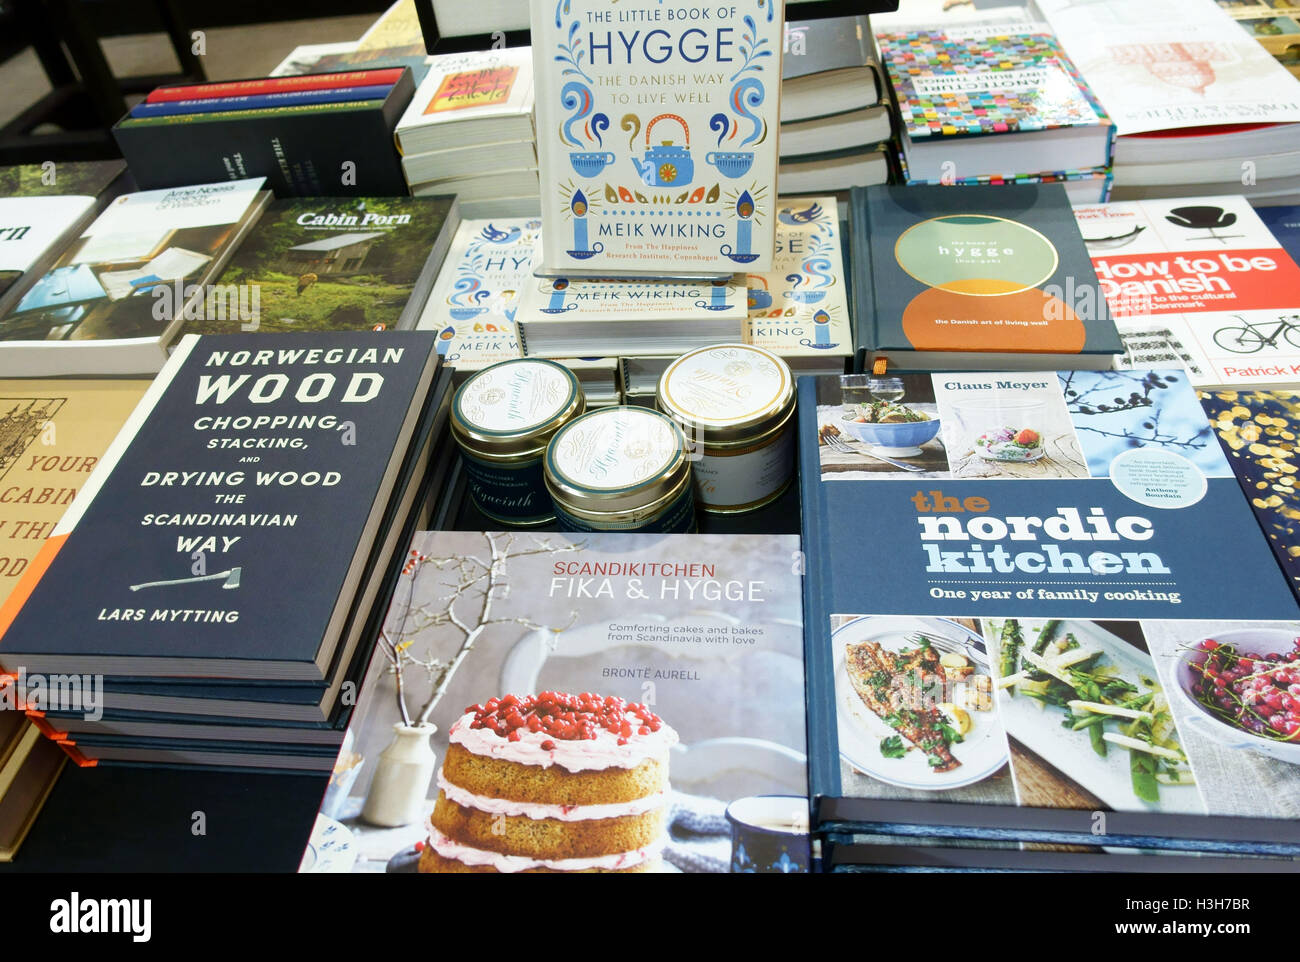 Bookshop display of books on the Danish art of Hygge, London - Stock Image